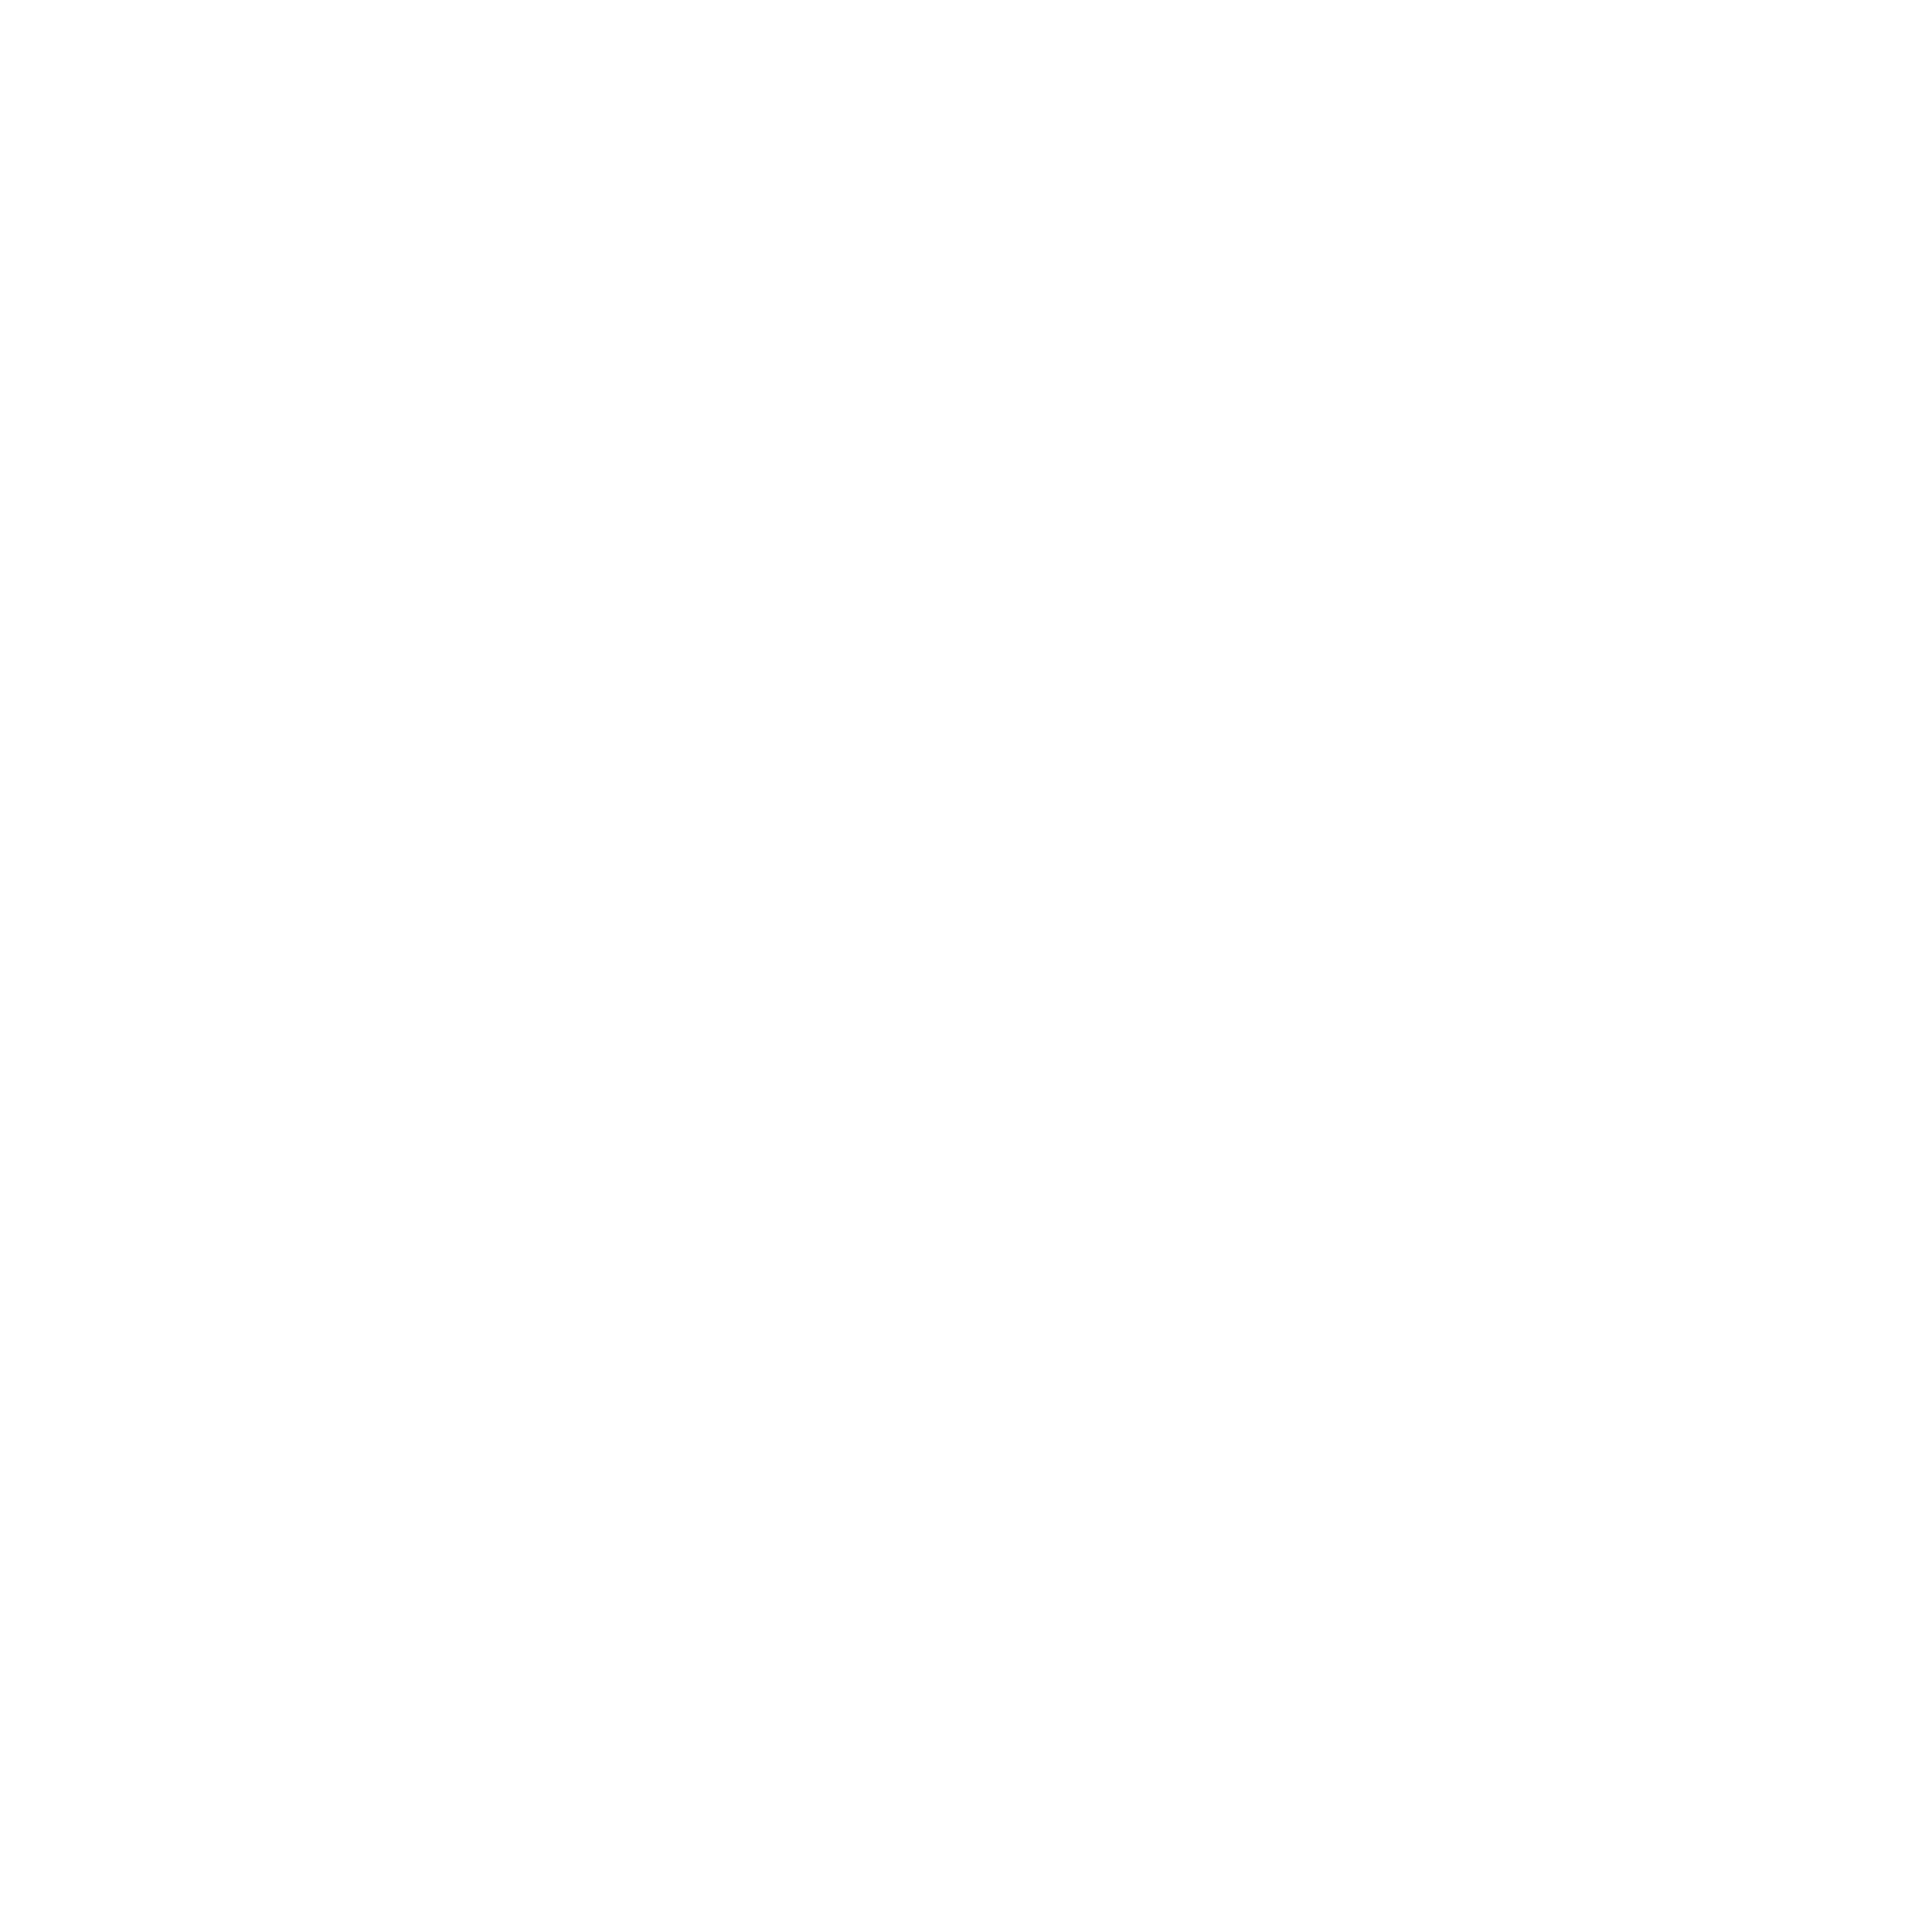 Mr. Excursions